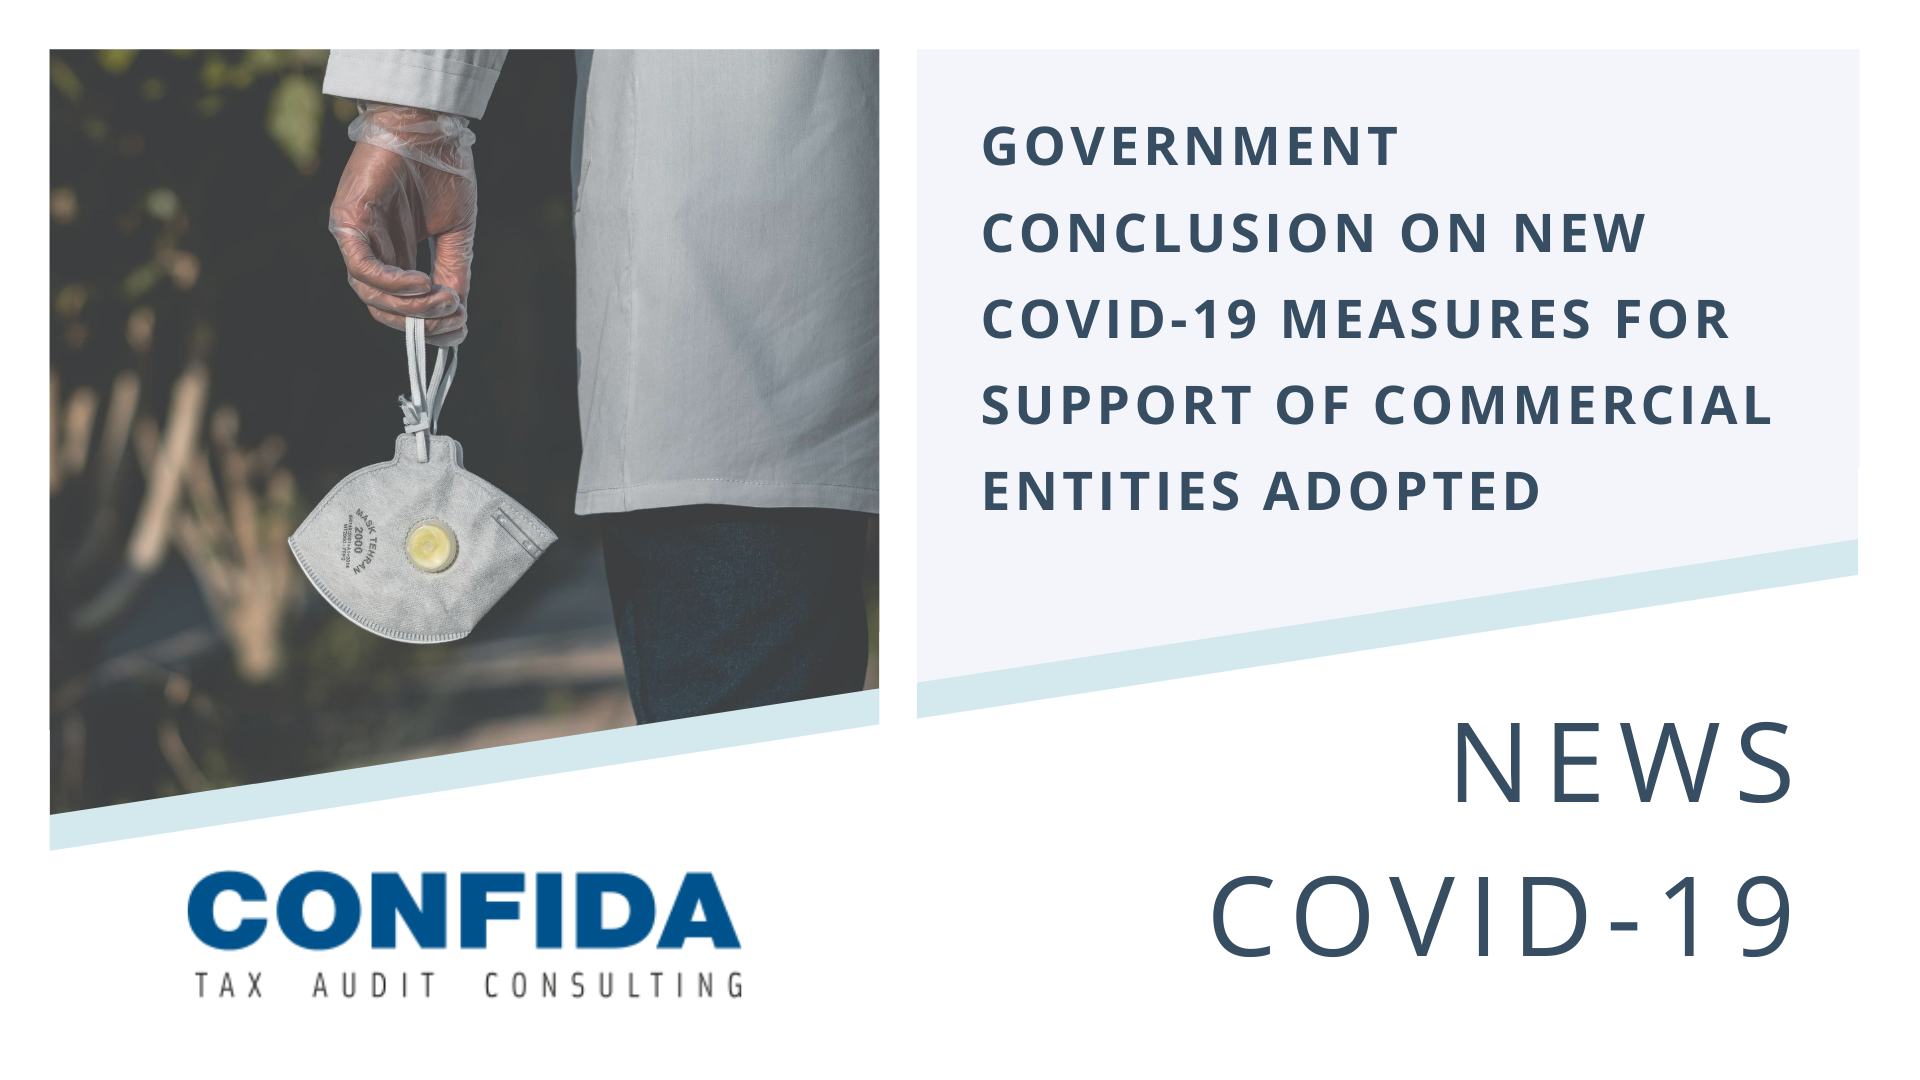 Government Conclusion on New COVID-19 Measures for support of Commercial Entities Adopted